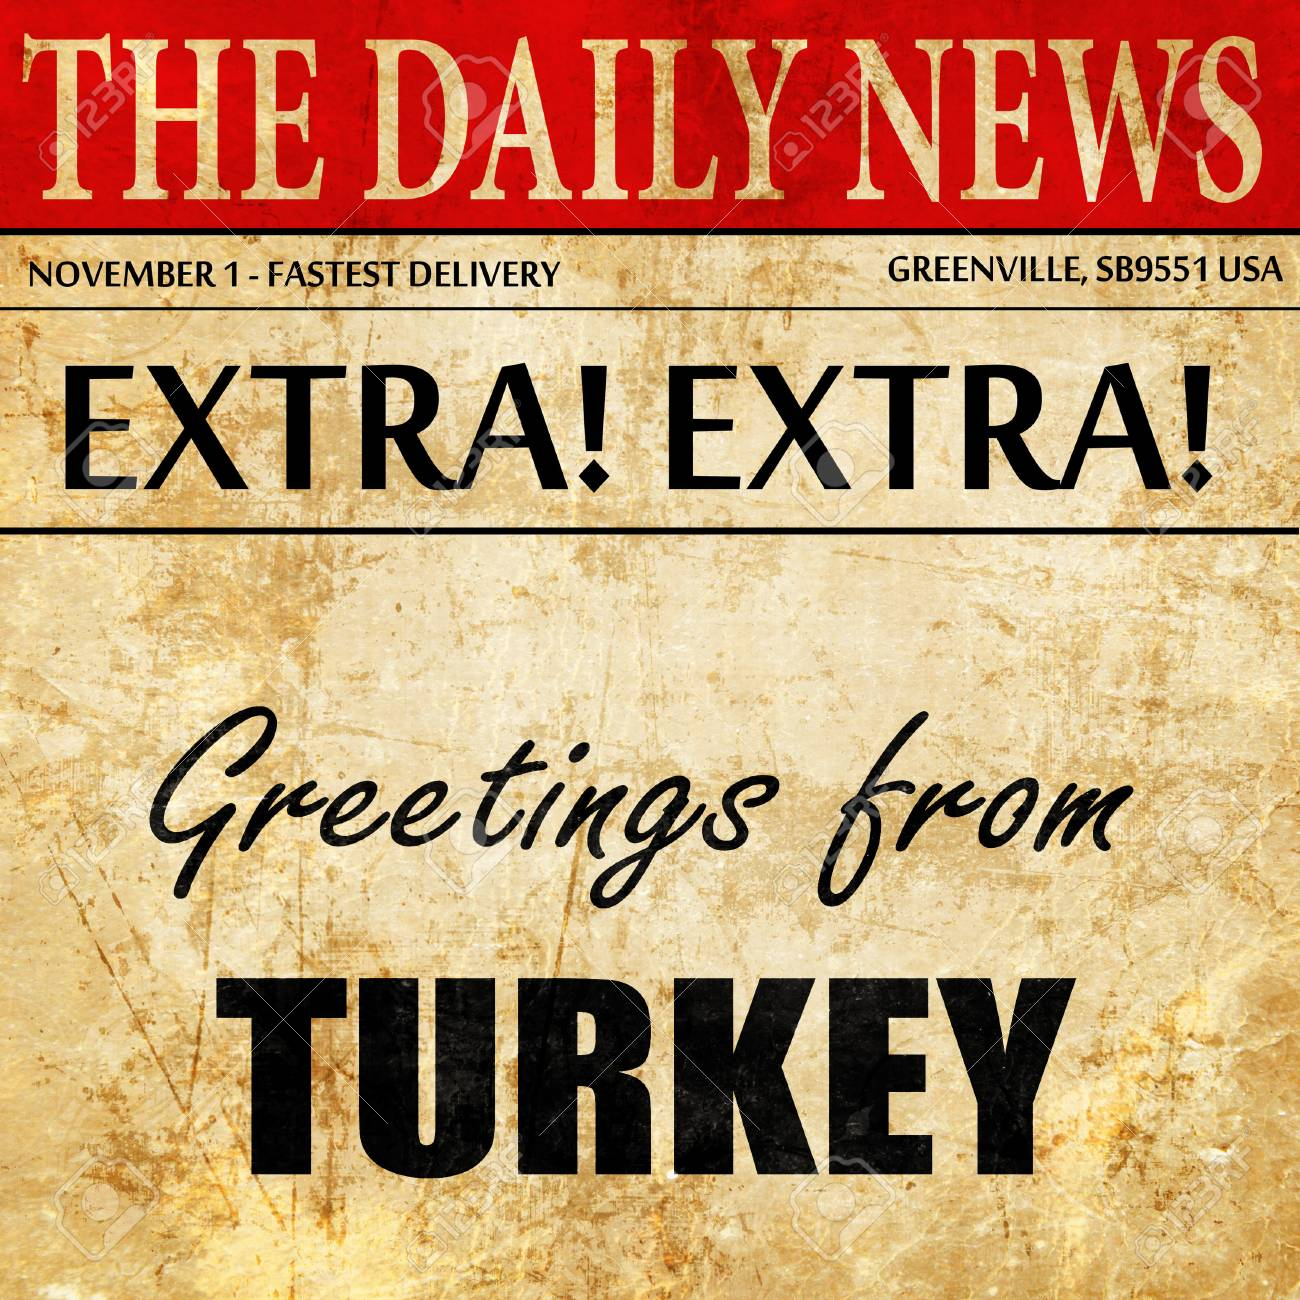 Greetings from turkey newspaper article text stock photo picture greetings from turkey newspaper article text stock photo 70781454 m4hsunfo